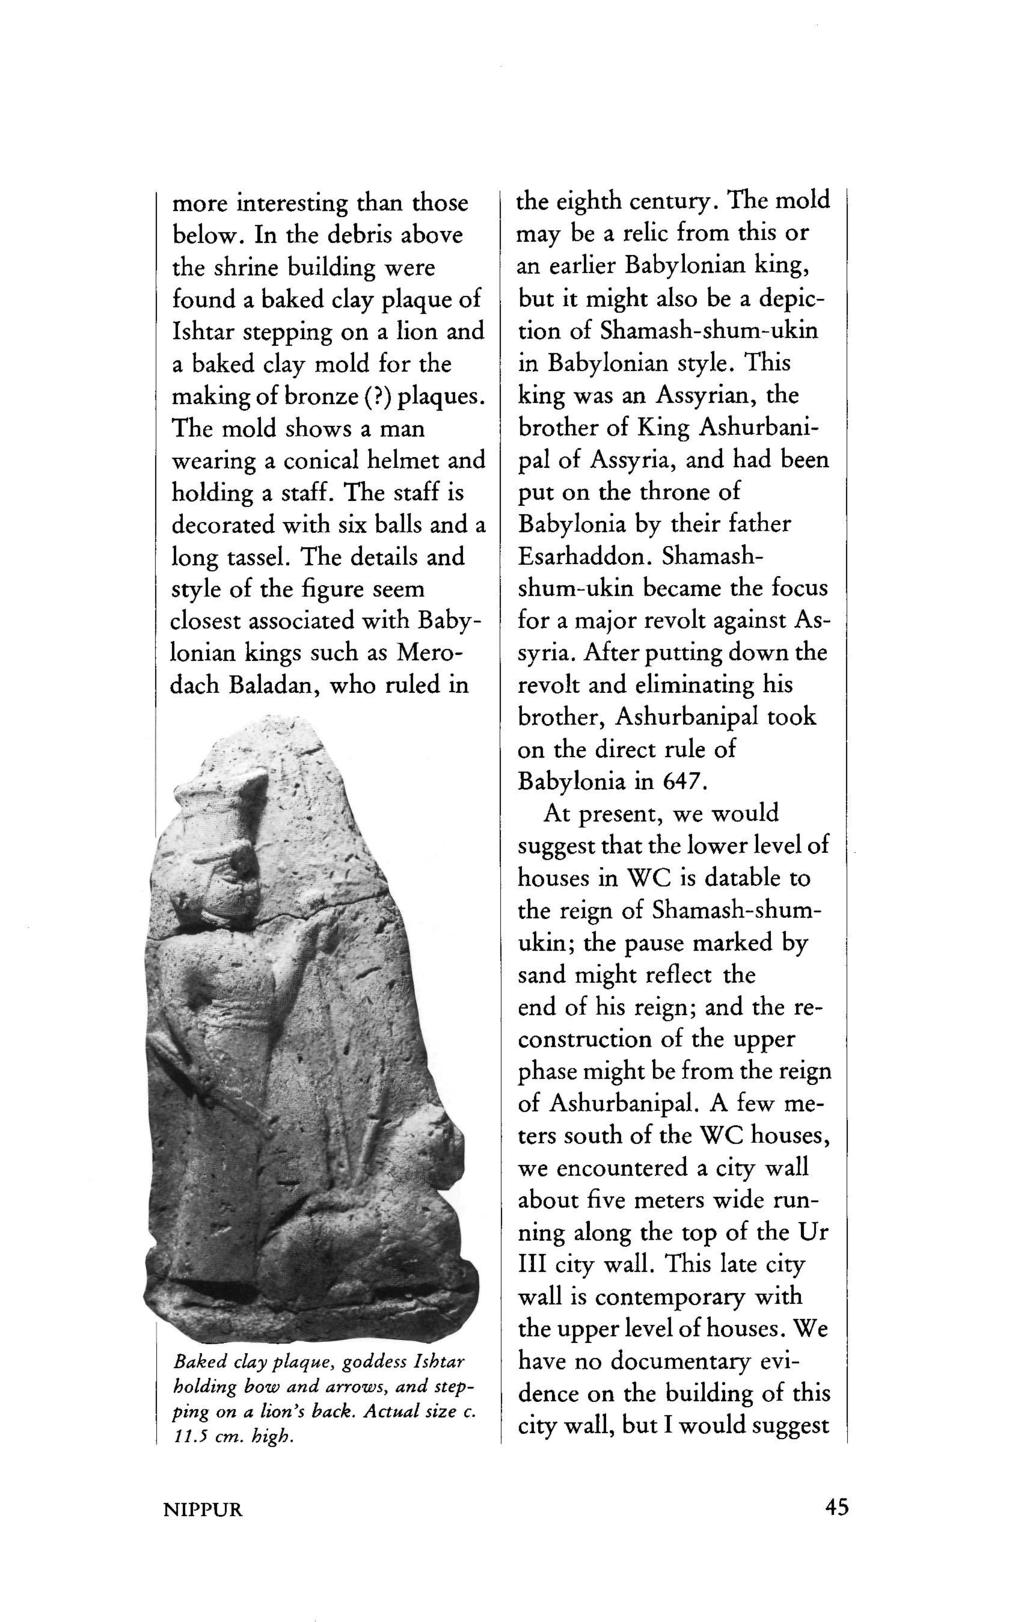 more interesting than those below. In the debris above the shrine building were found a baked clay plaque of Ishtar stepping on a lion and a baked clay mold for the making of bronze (?) plaques.